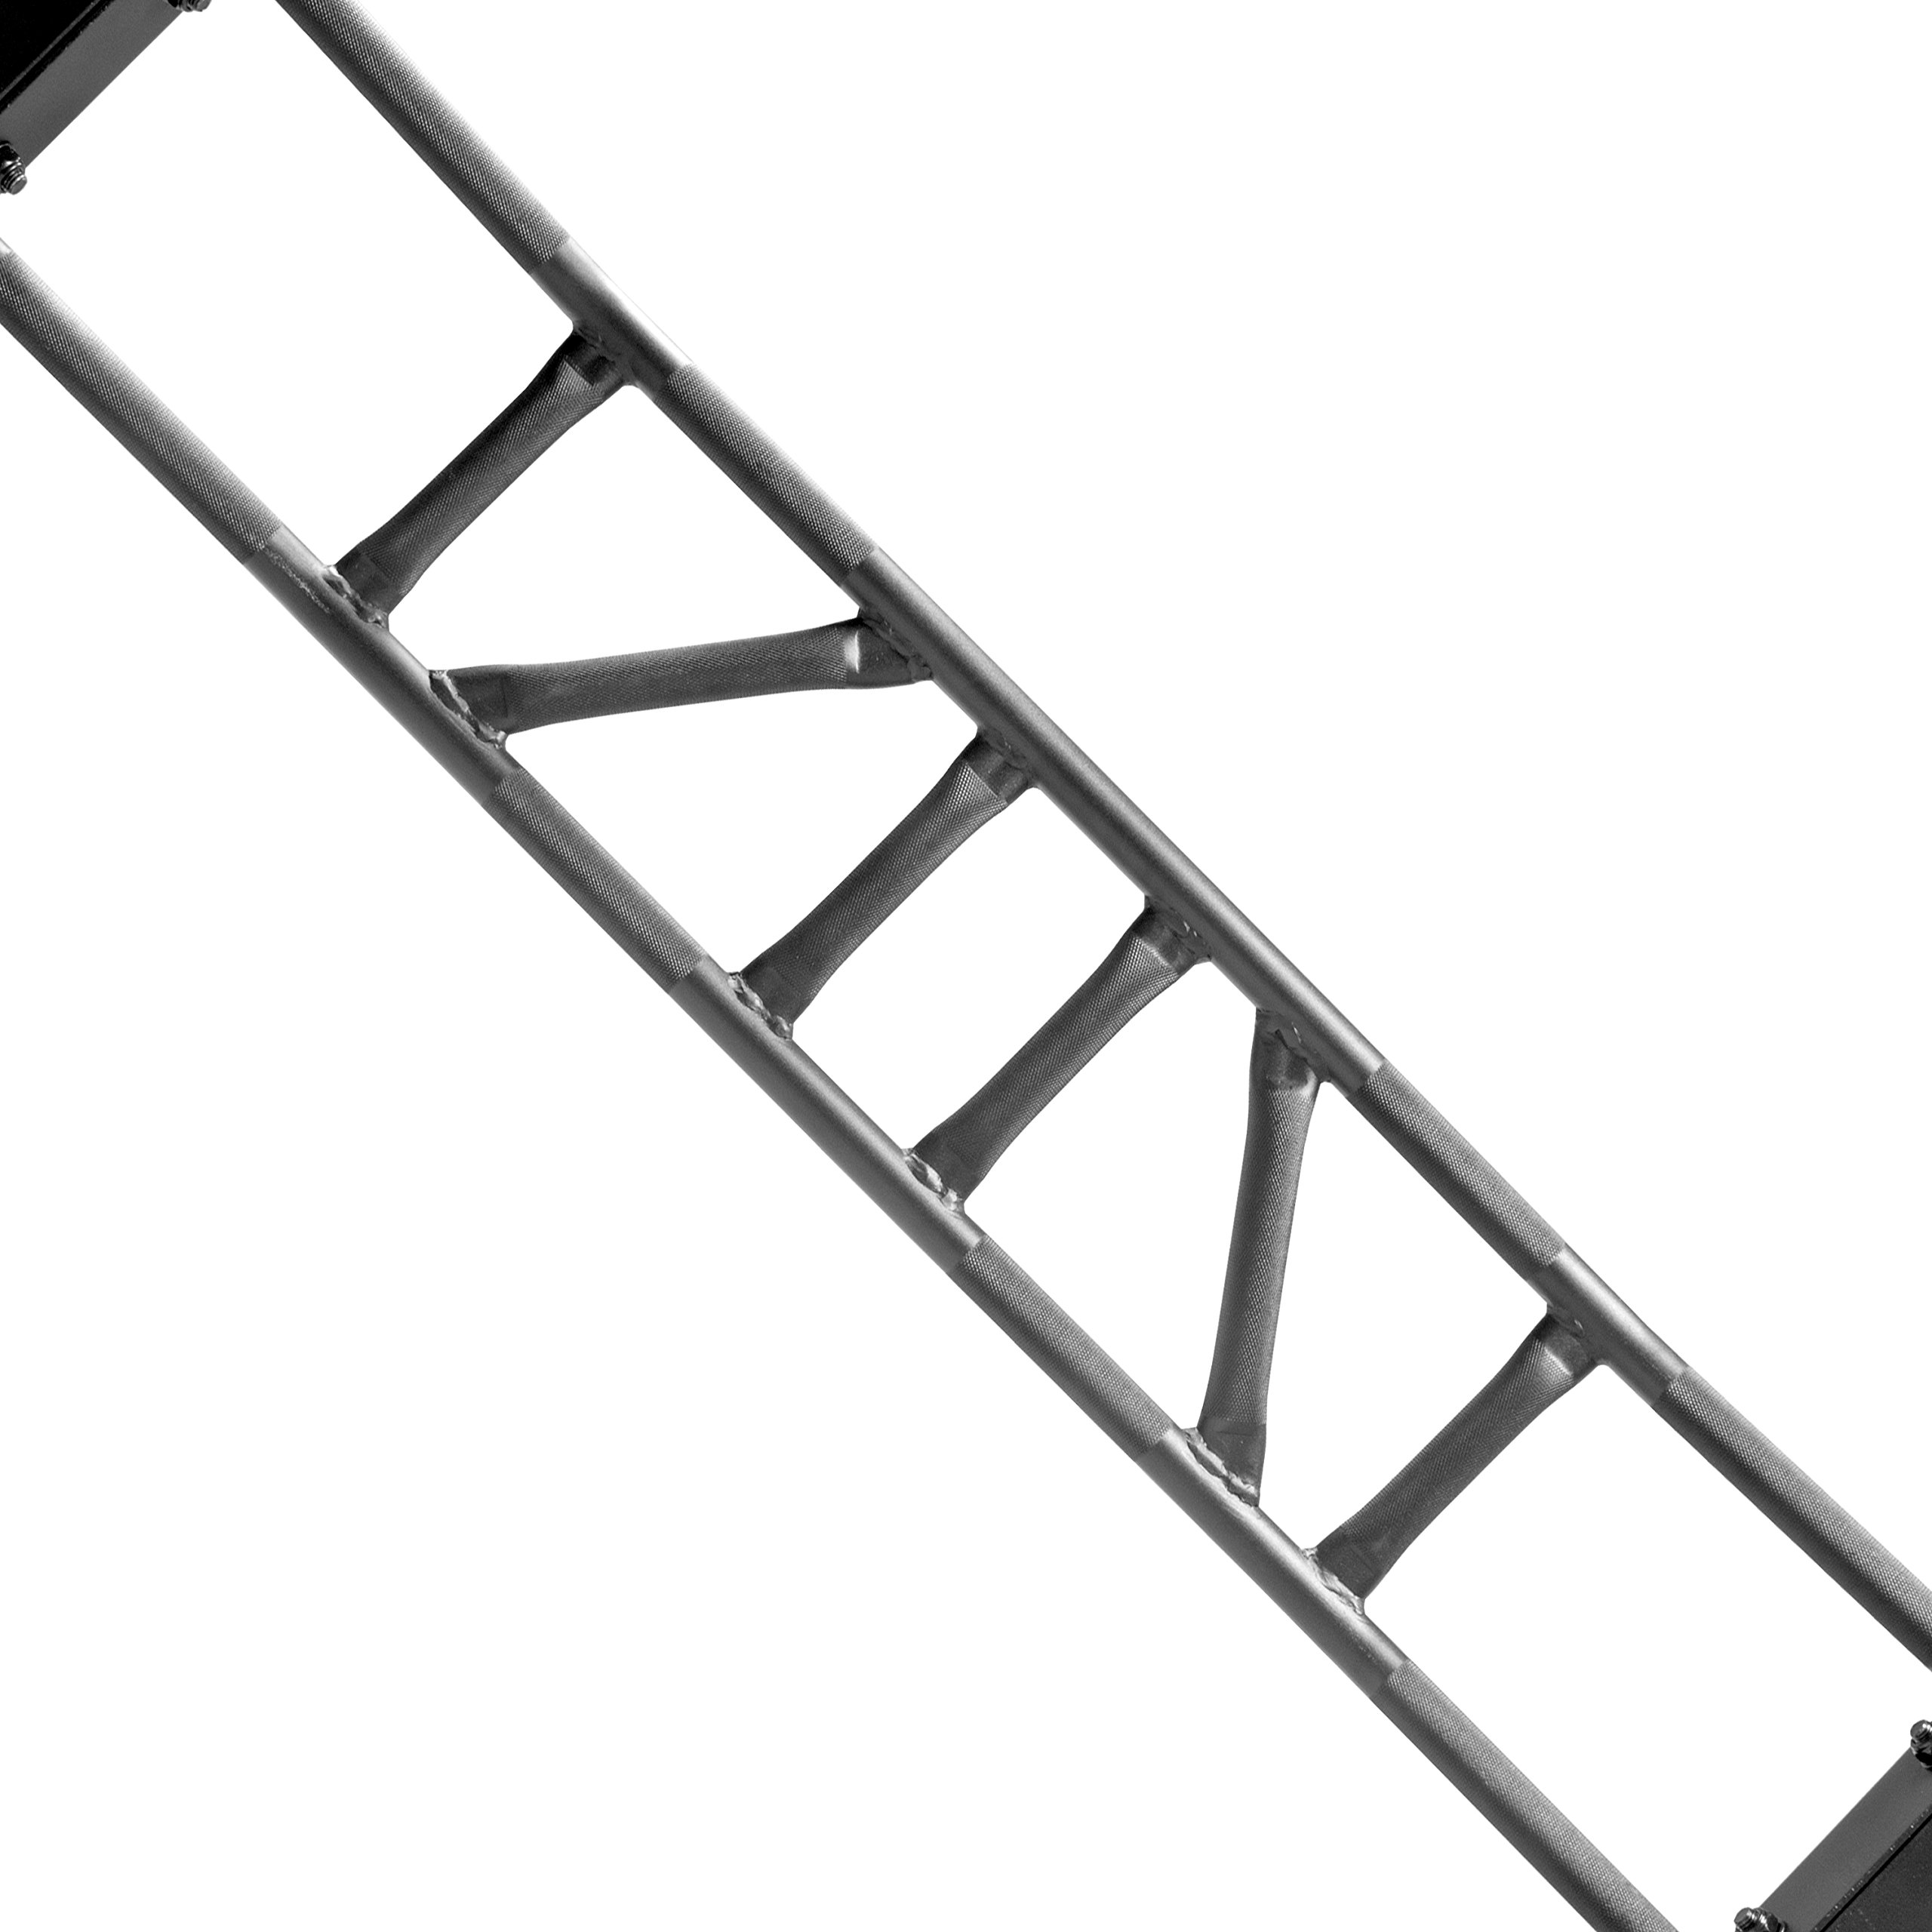 XMark Commercial Multi-Grip Wall Mounted Chin-Up Pull-Up Bar XM-9025 by XMark (Image #8)